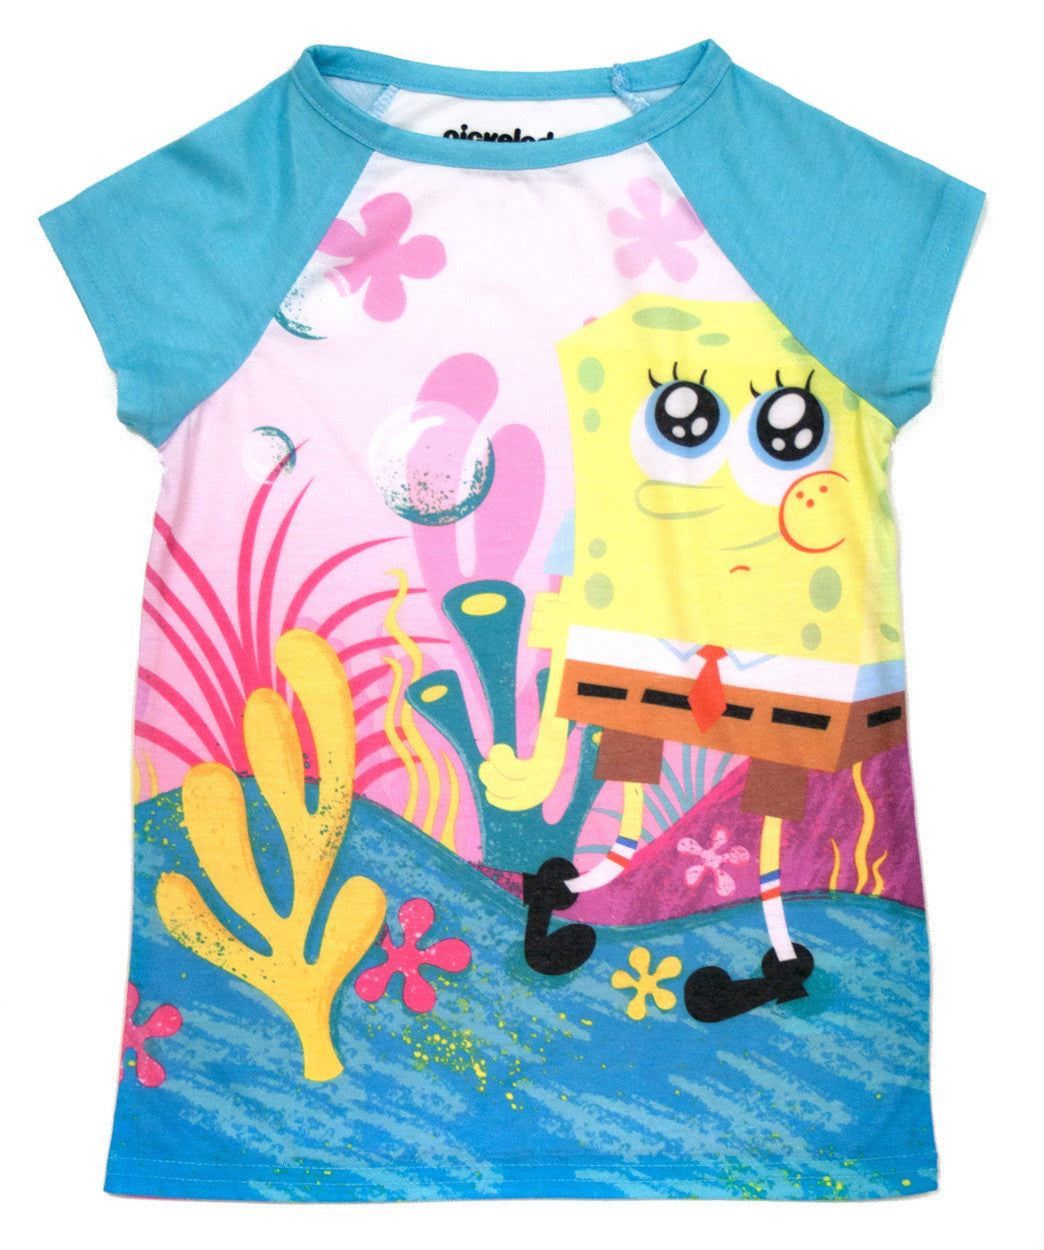 "SpongeBob SquarePants ""Beachy"" Raglan Tee - Girls - nickelodeonstore.co.uk"